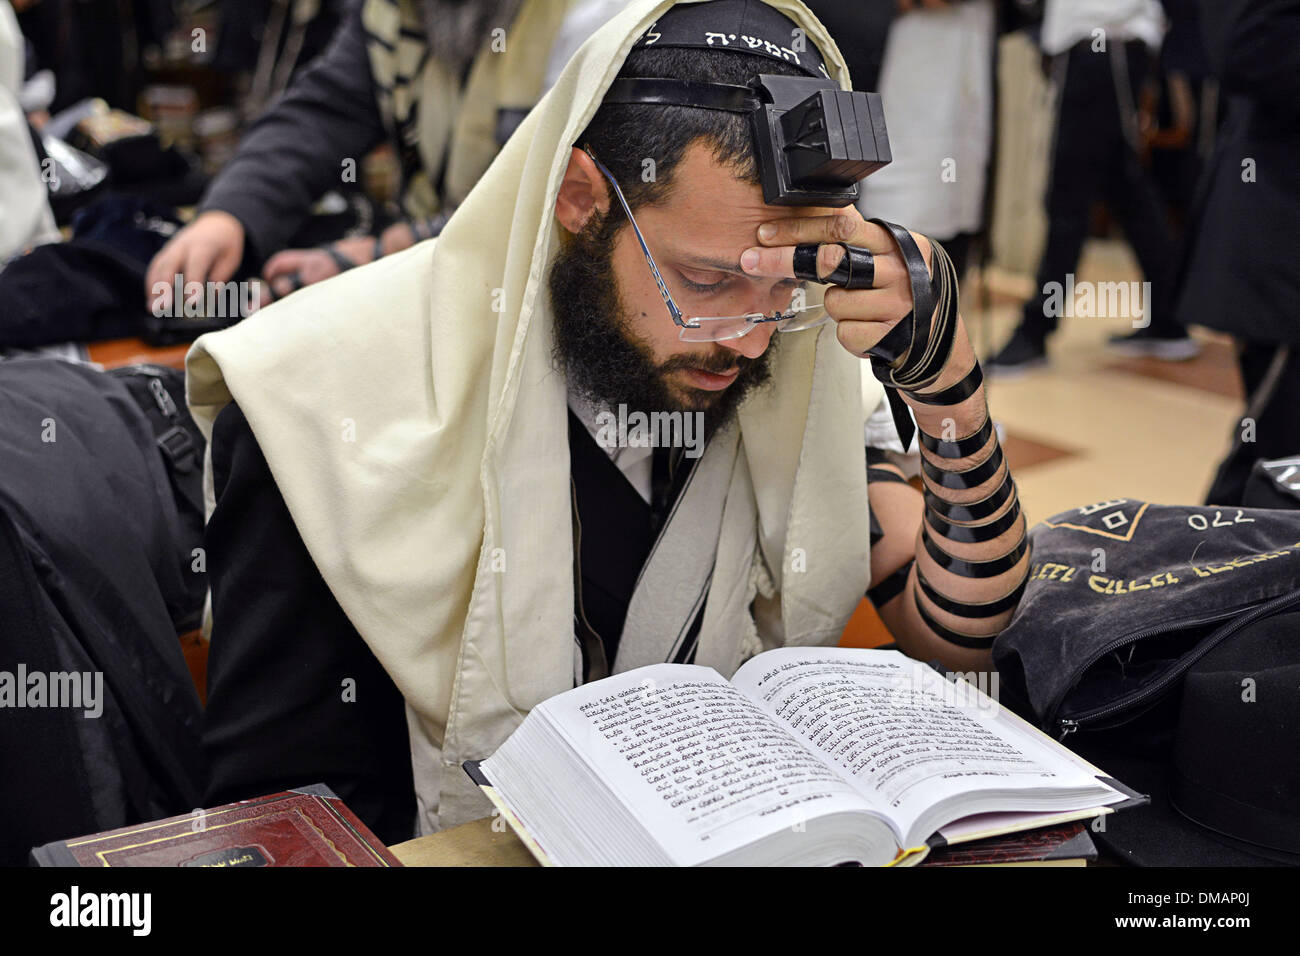 A religious young Jewish man with a beard at morning prayers at the Lubavitch headquarters in Brooklyn, New York - Stock Image